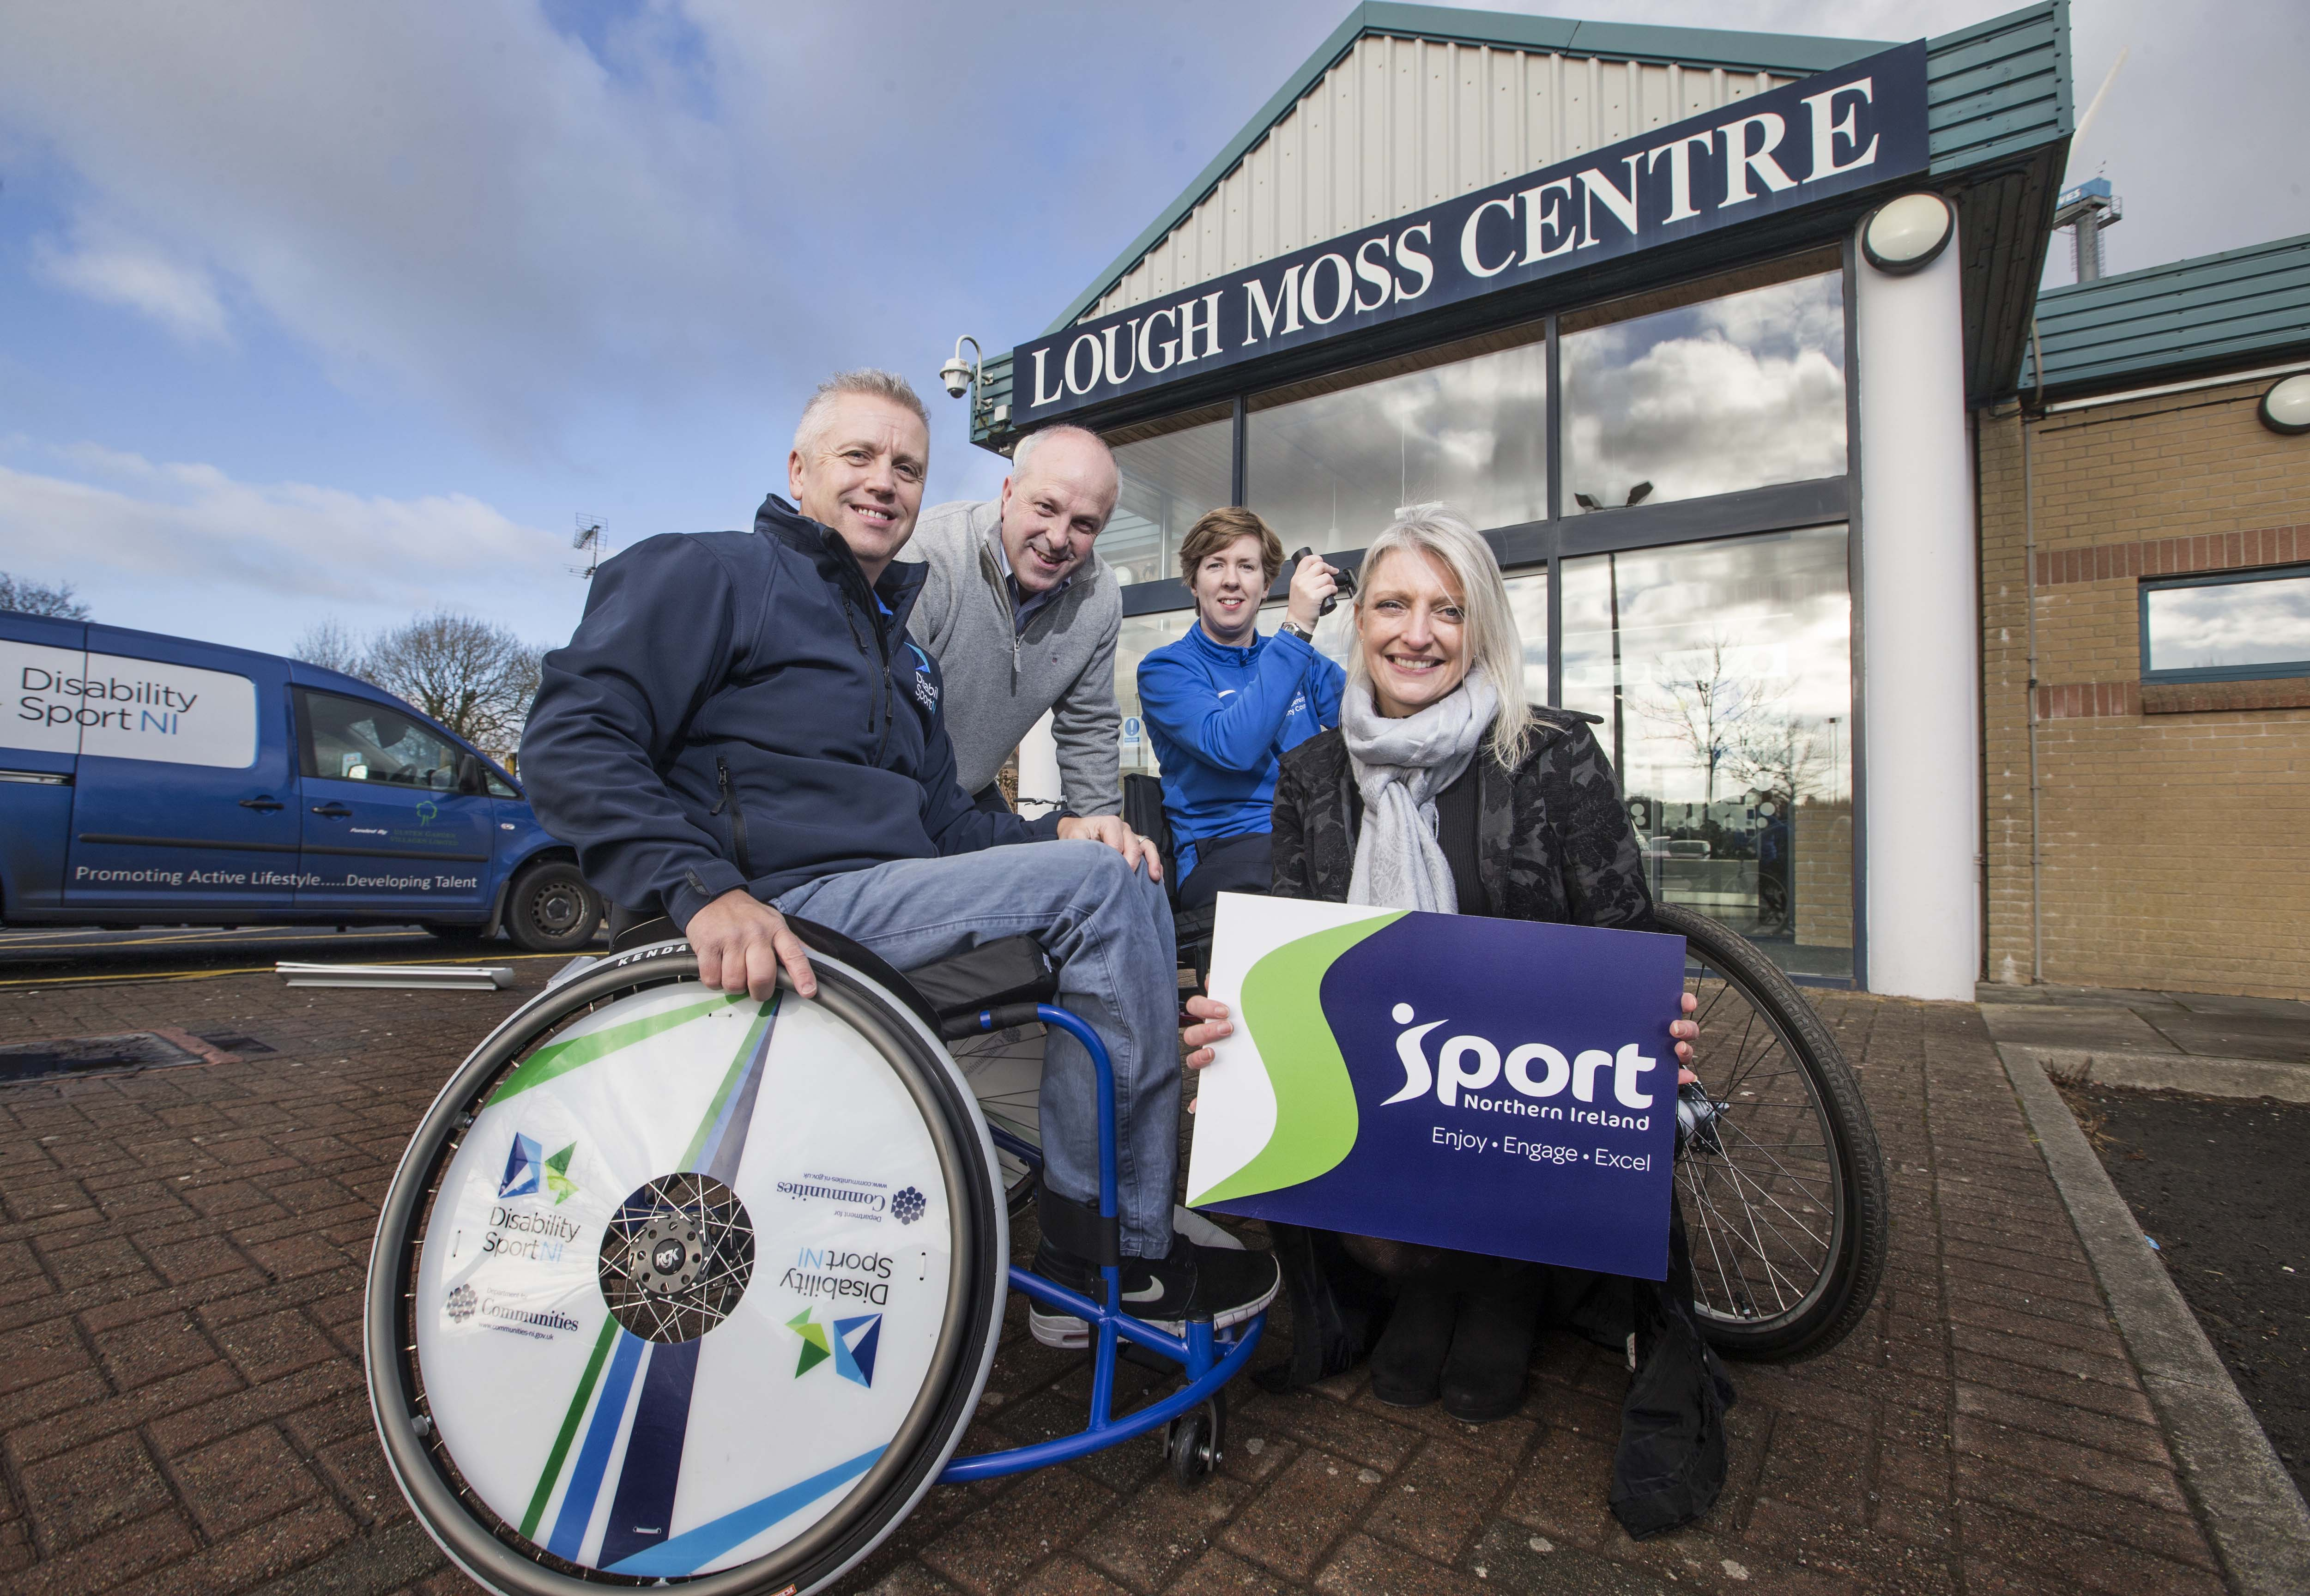 Representatives from DIsability Sport NI, Sport NI and Lisburn and Castlereagh City Council are outside the Lough Moss Centre